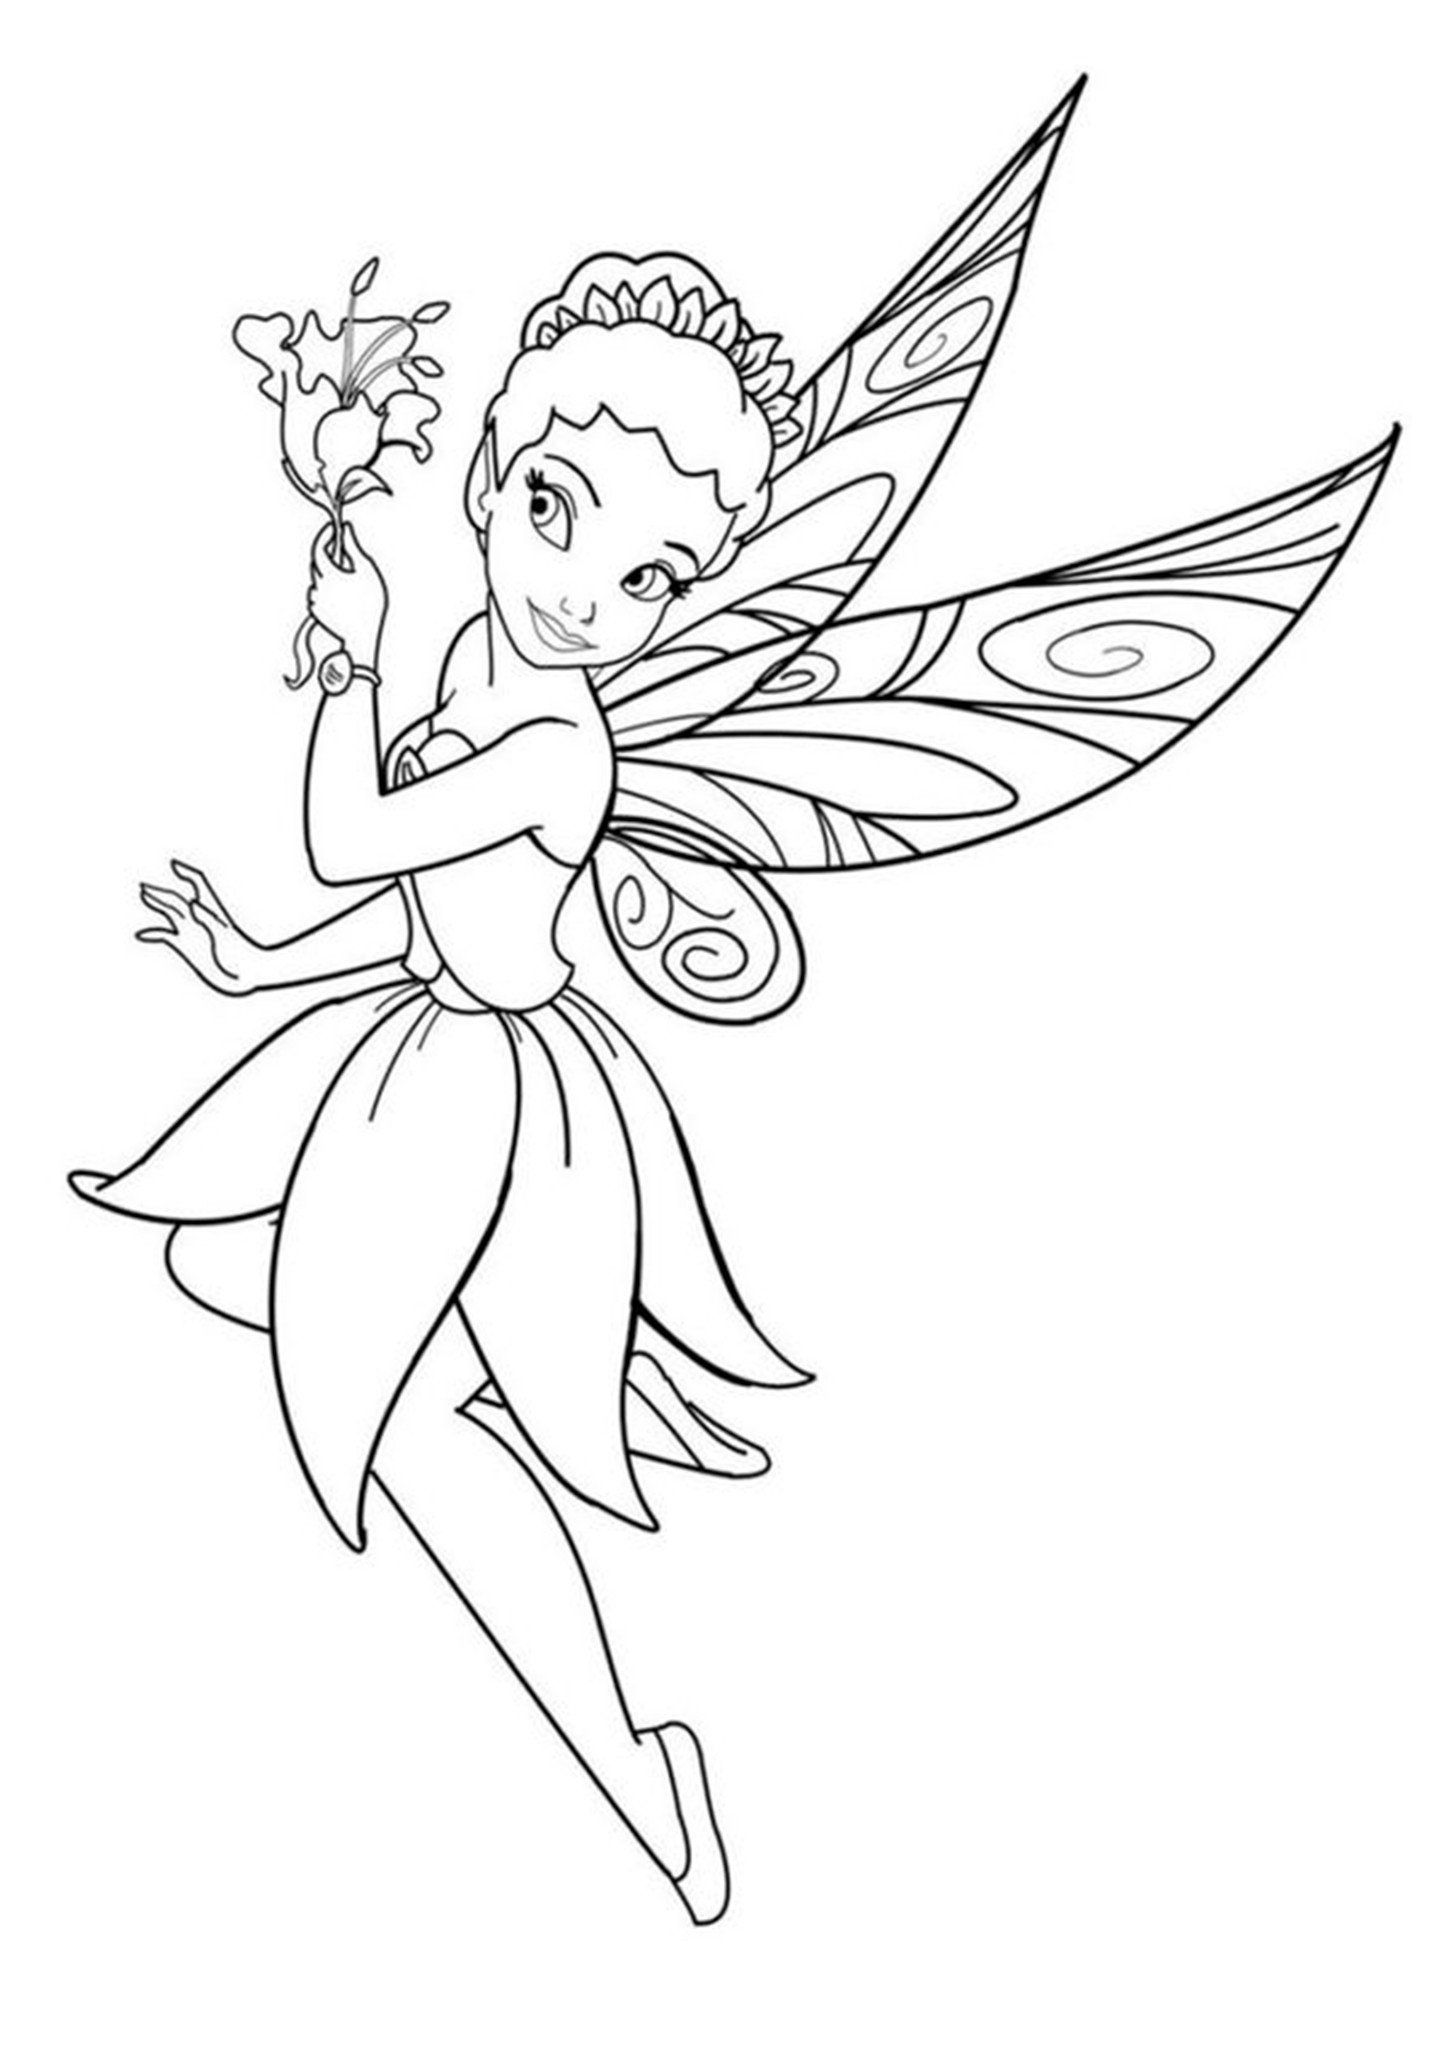 Fairy Coloring Page For Kid Free Easy To Print Fairy Coloring Pages Tulamama Fairy Coloring Pages Fairy Drawings Fairy Coloring Book